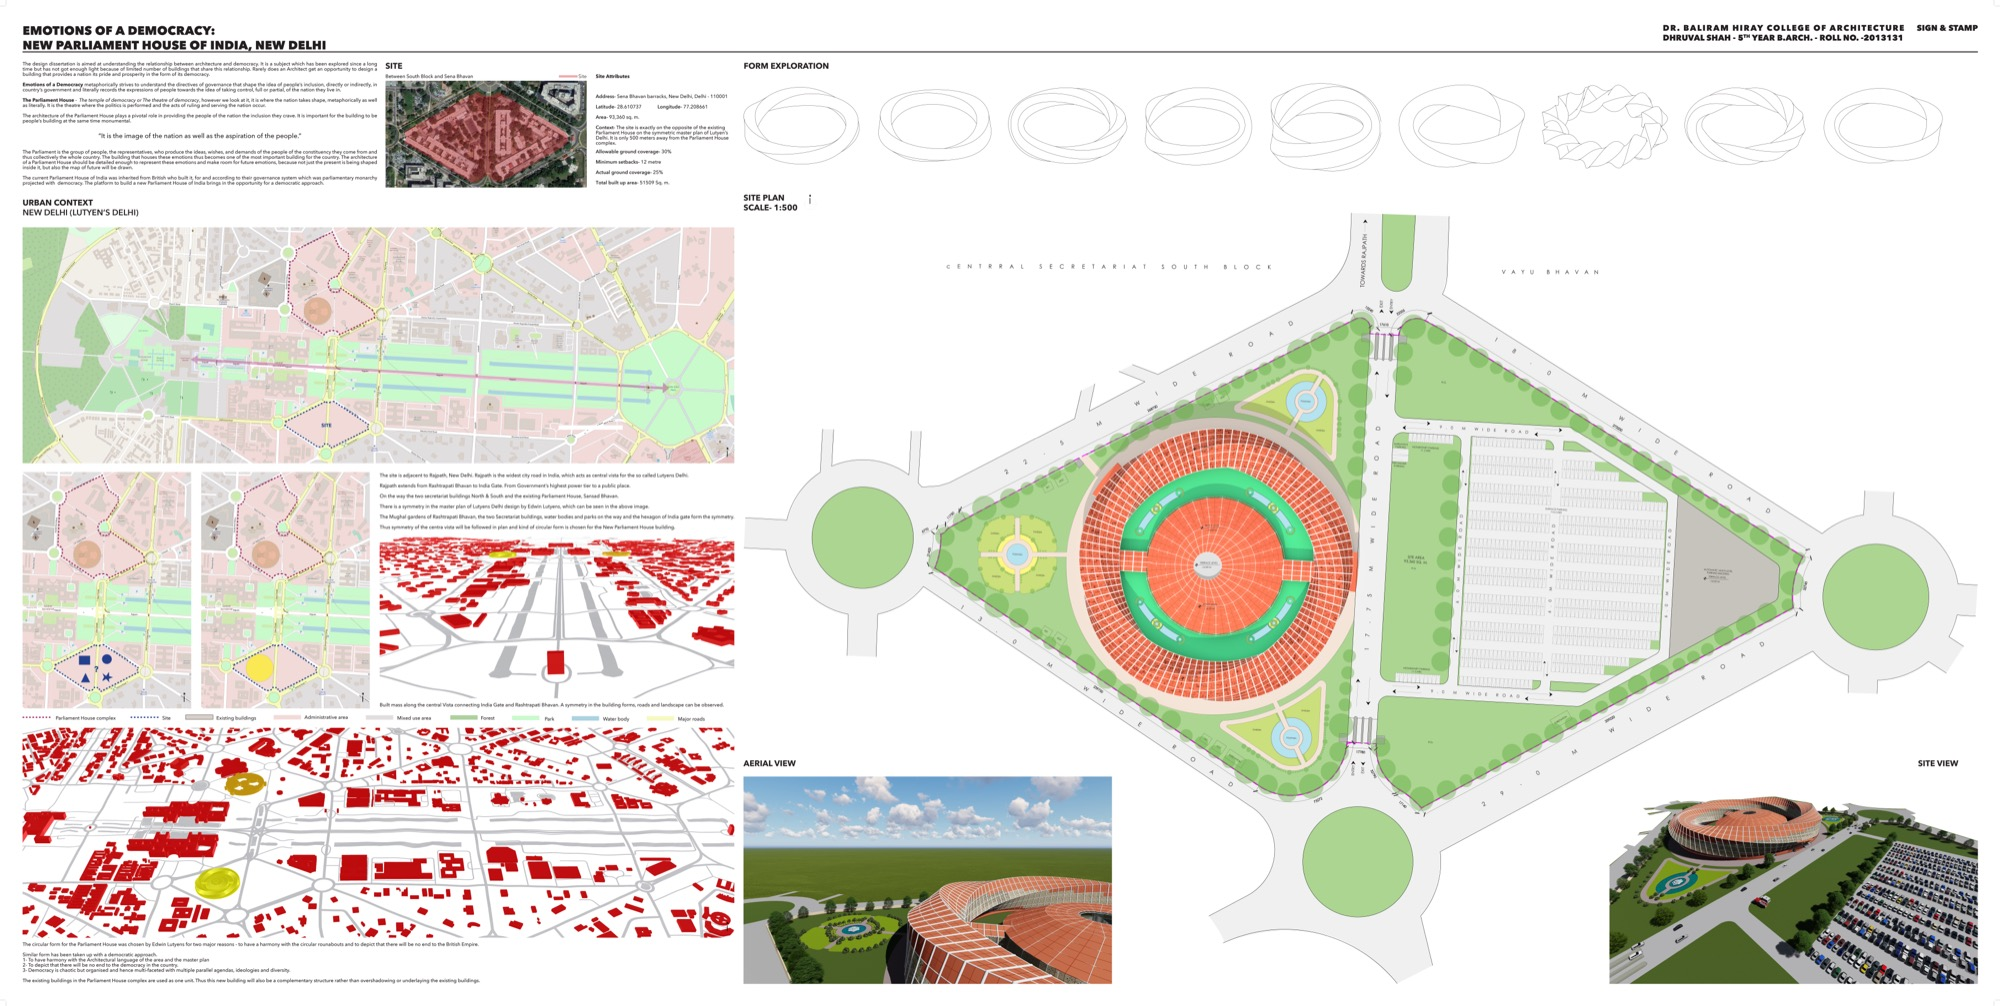 B.Arch Thesis: Emotions of a Democracy: New Parliament House of India, New Delhi Dhruval Shah 16